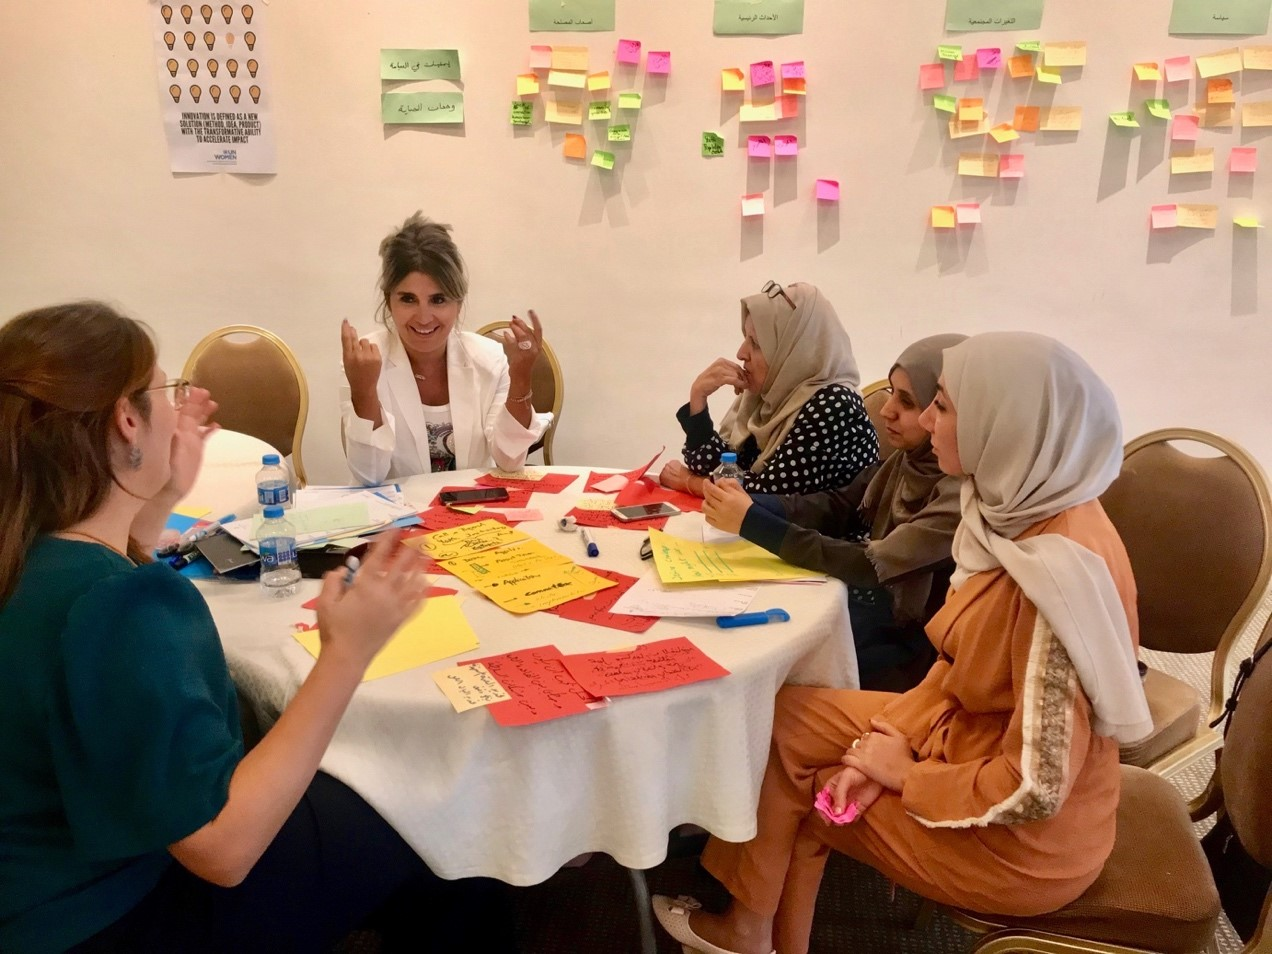 Applying Social Innovation for Women's Rights in the Arab States